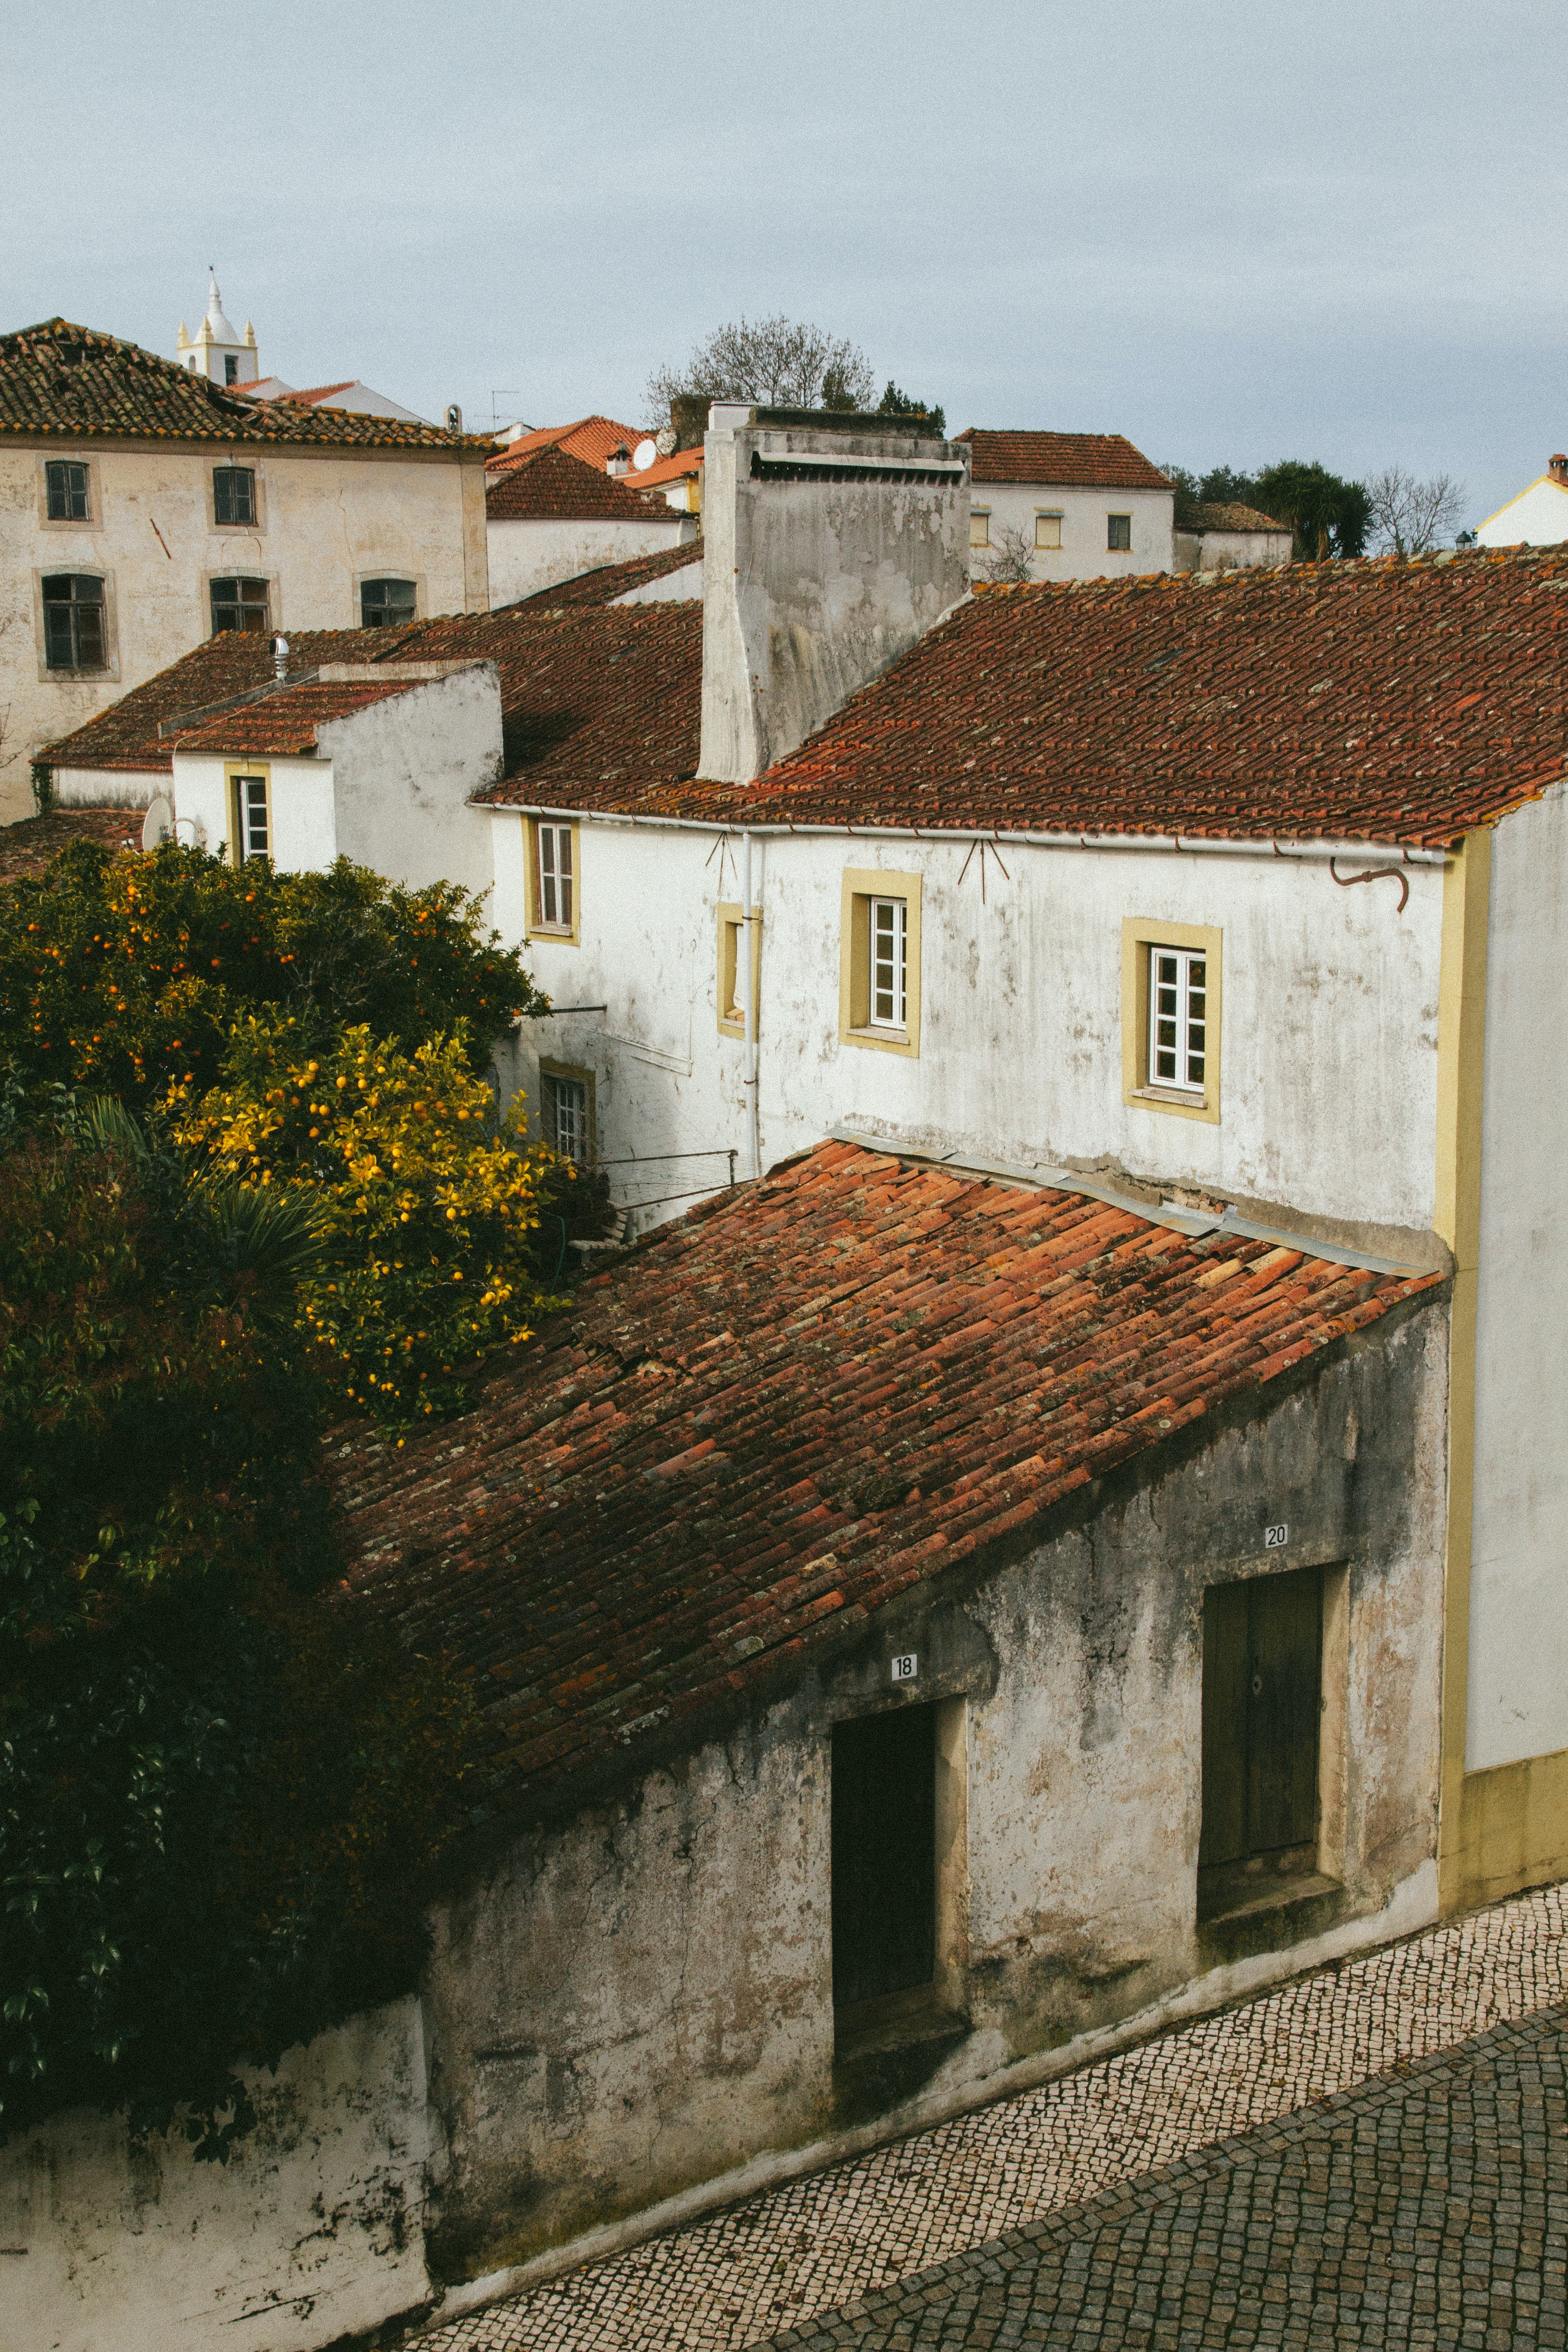 View of some white houses with red roofs and trees in the backyard